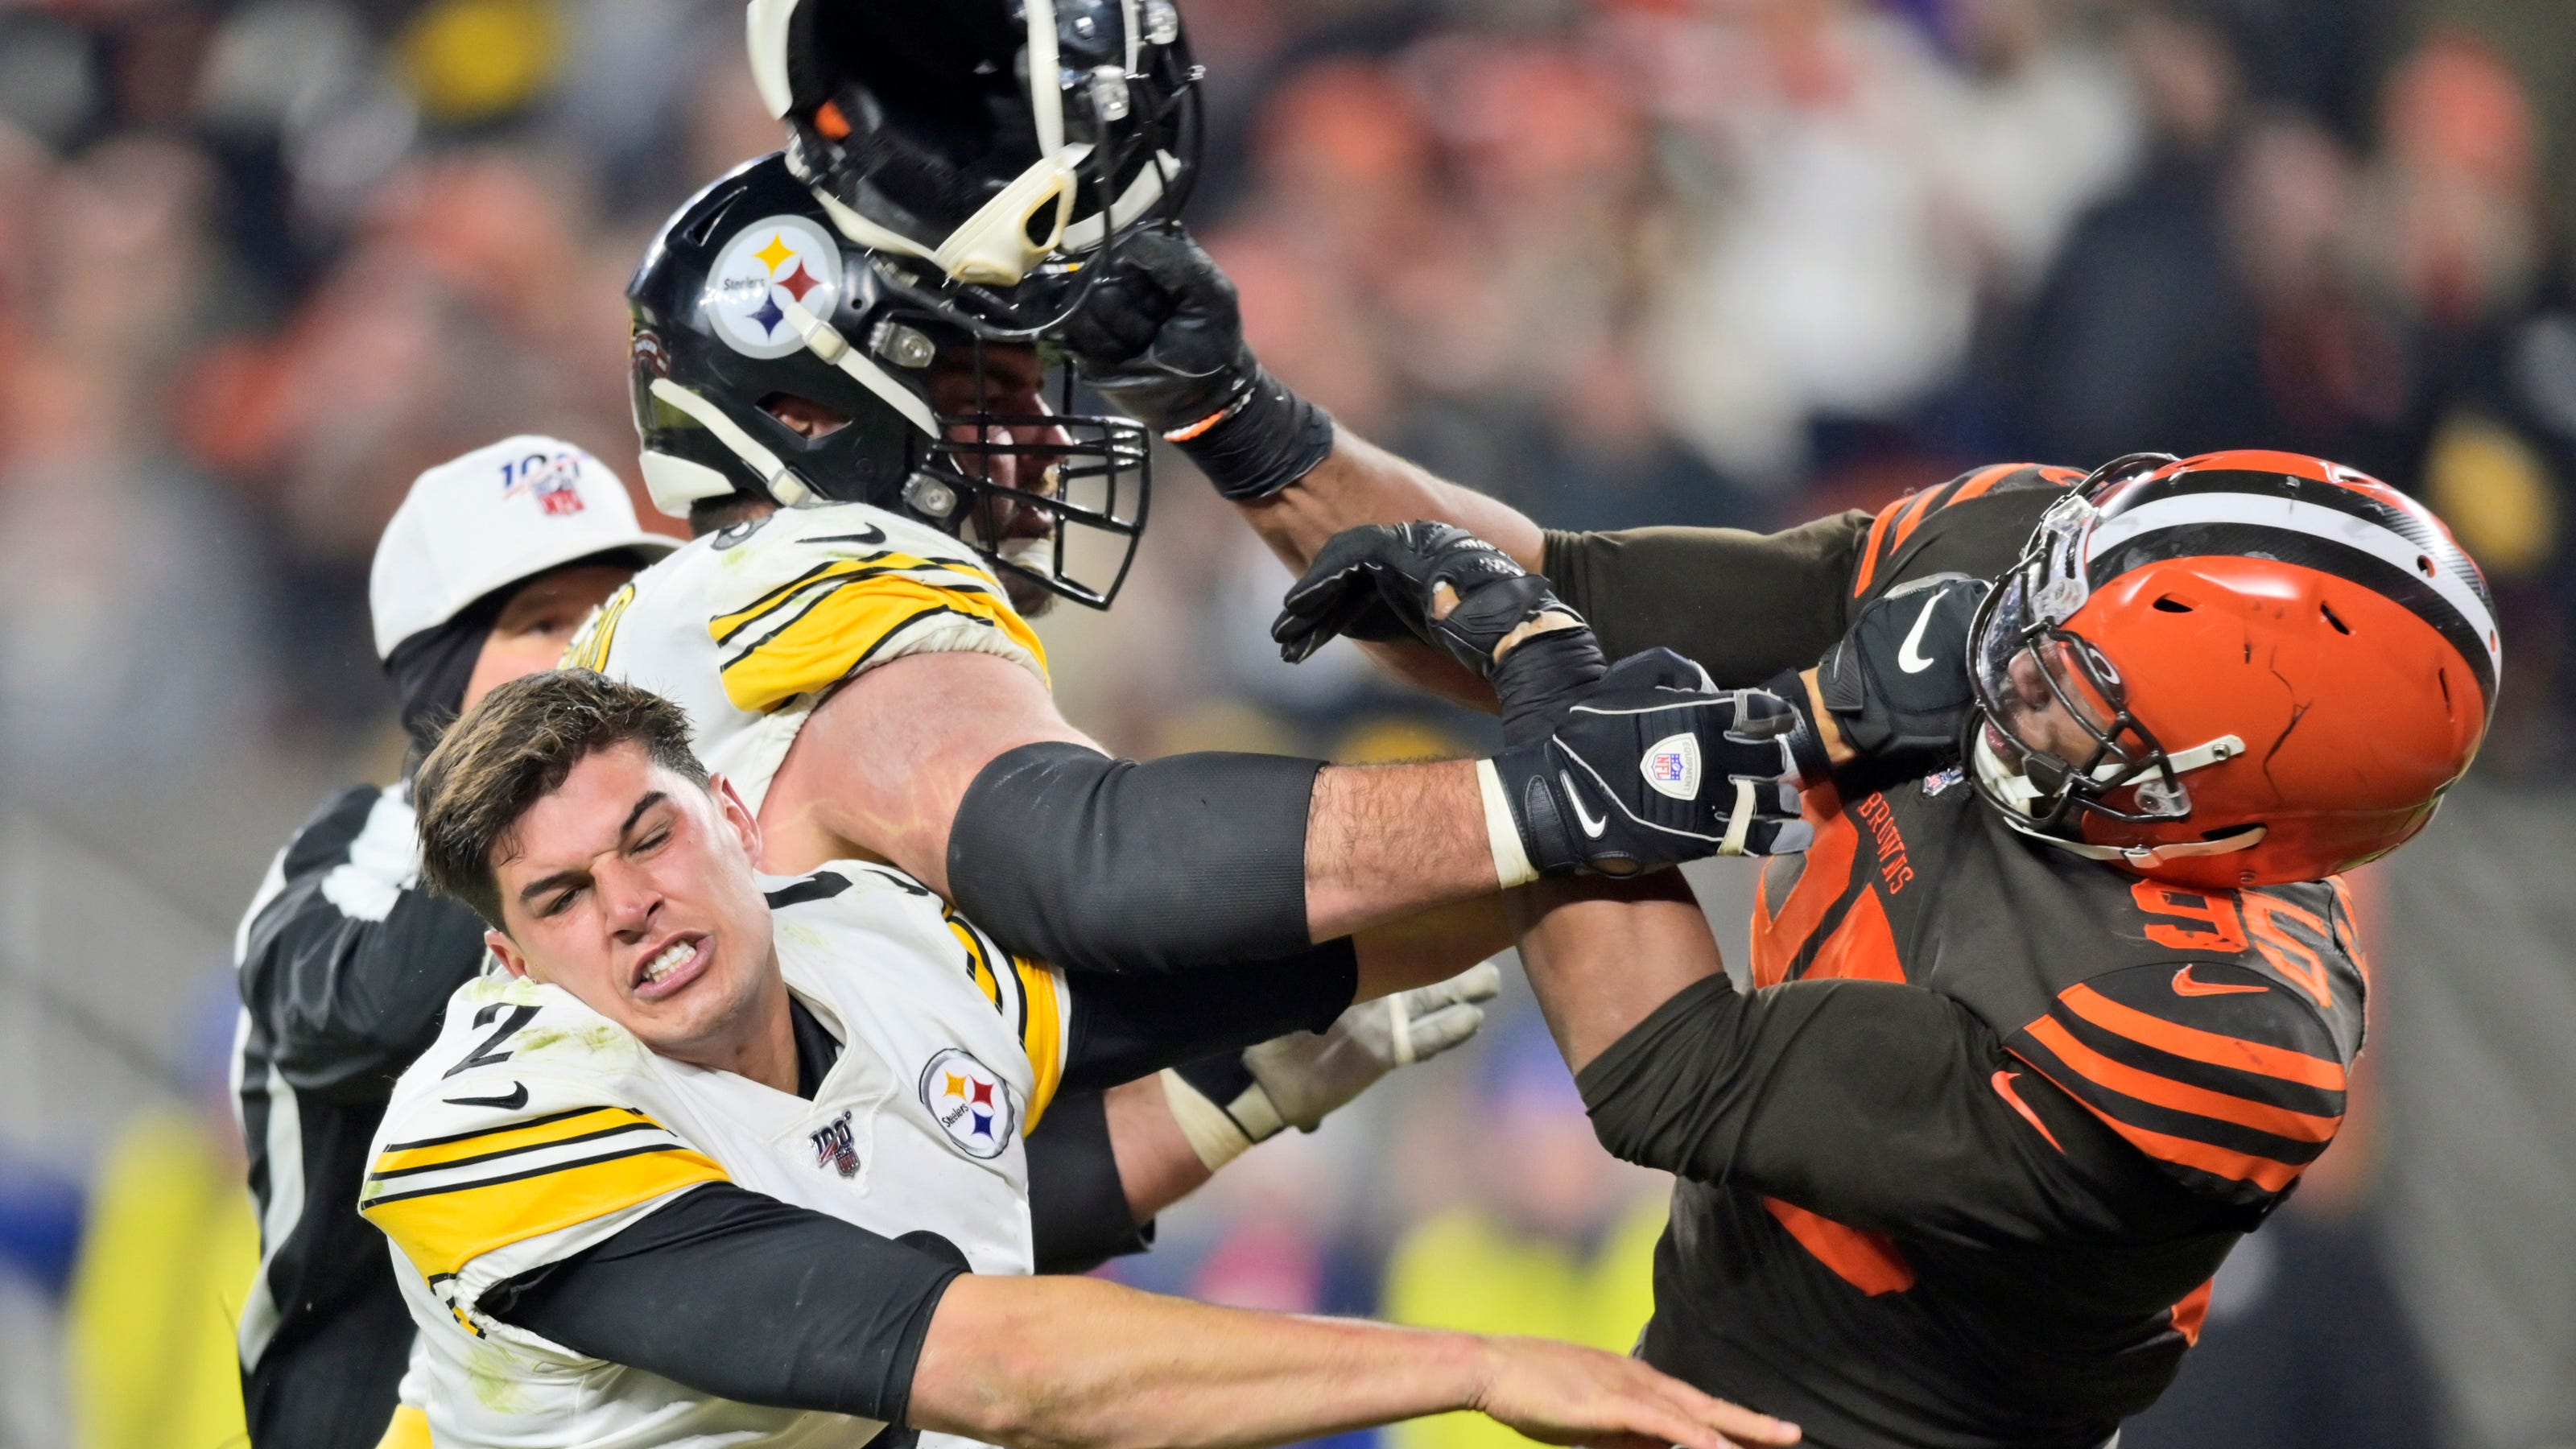 Browns' Myles Garrett swings helmet at Steelers QB Mason Rudolph, sparking ugly brawl